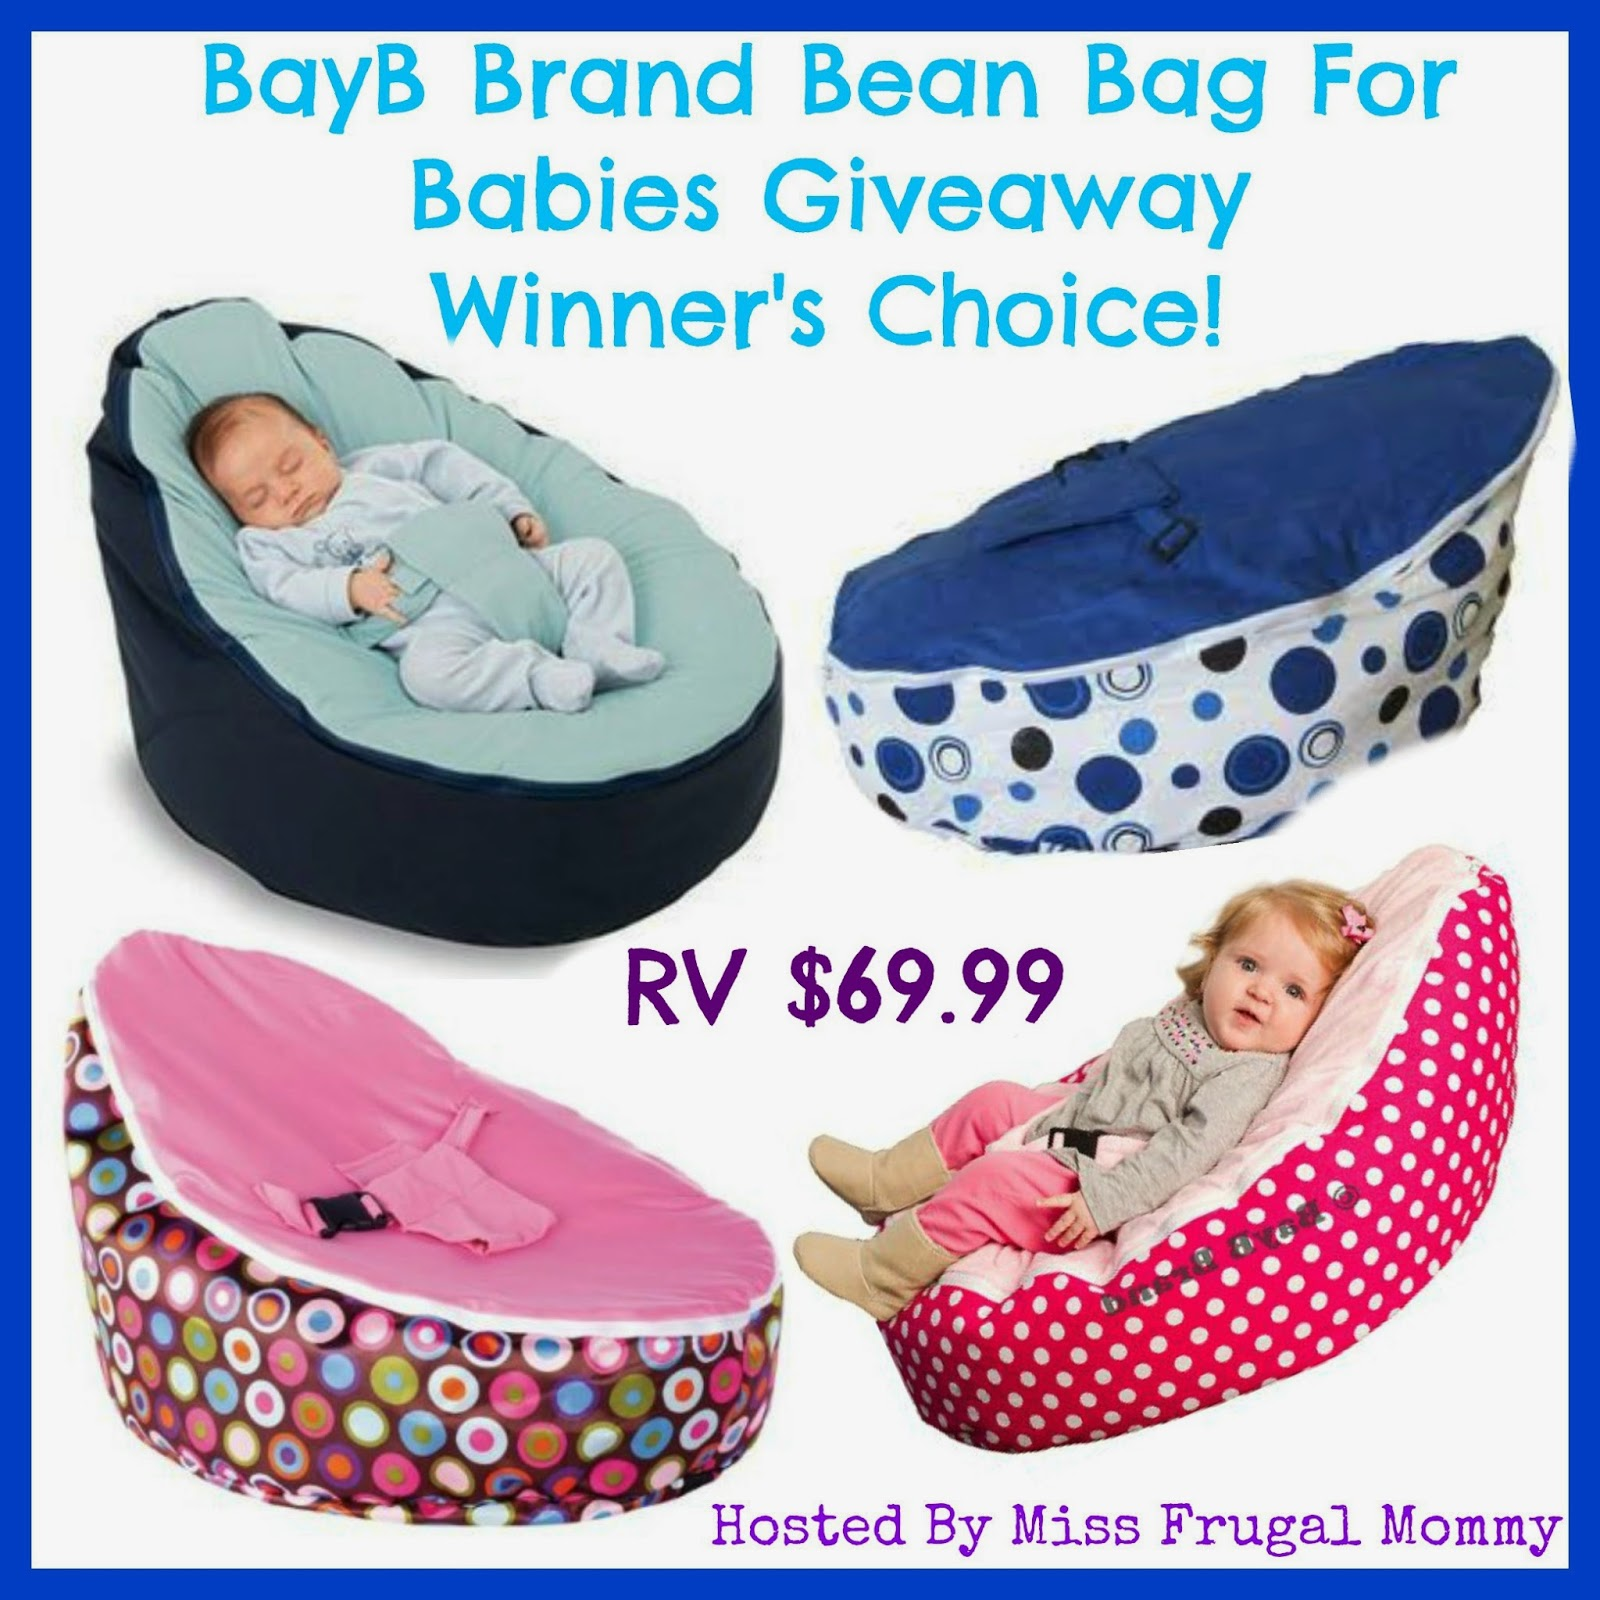 BayB Brand Baby Bean Bag Giveaway